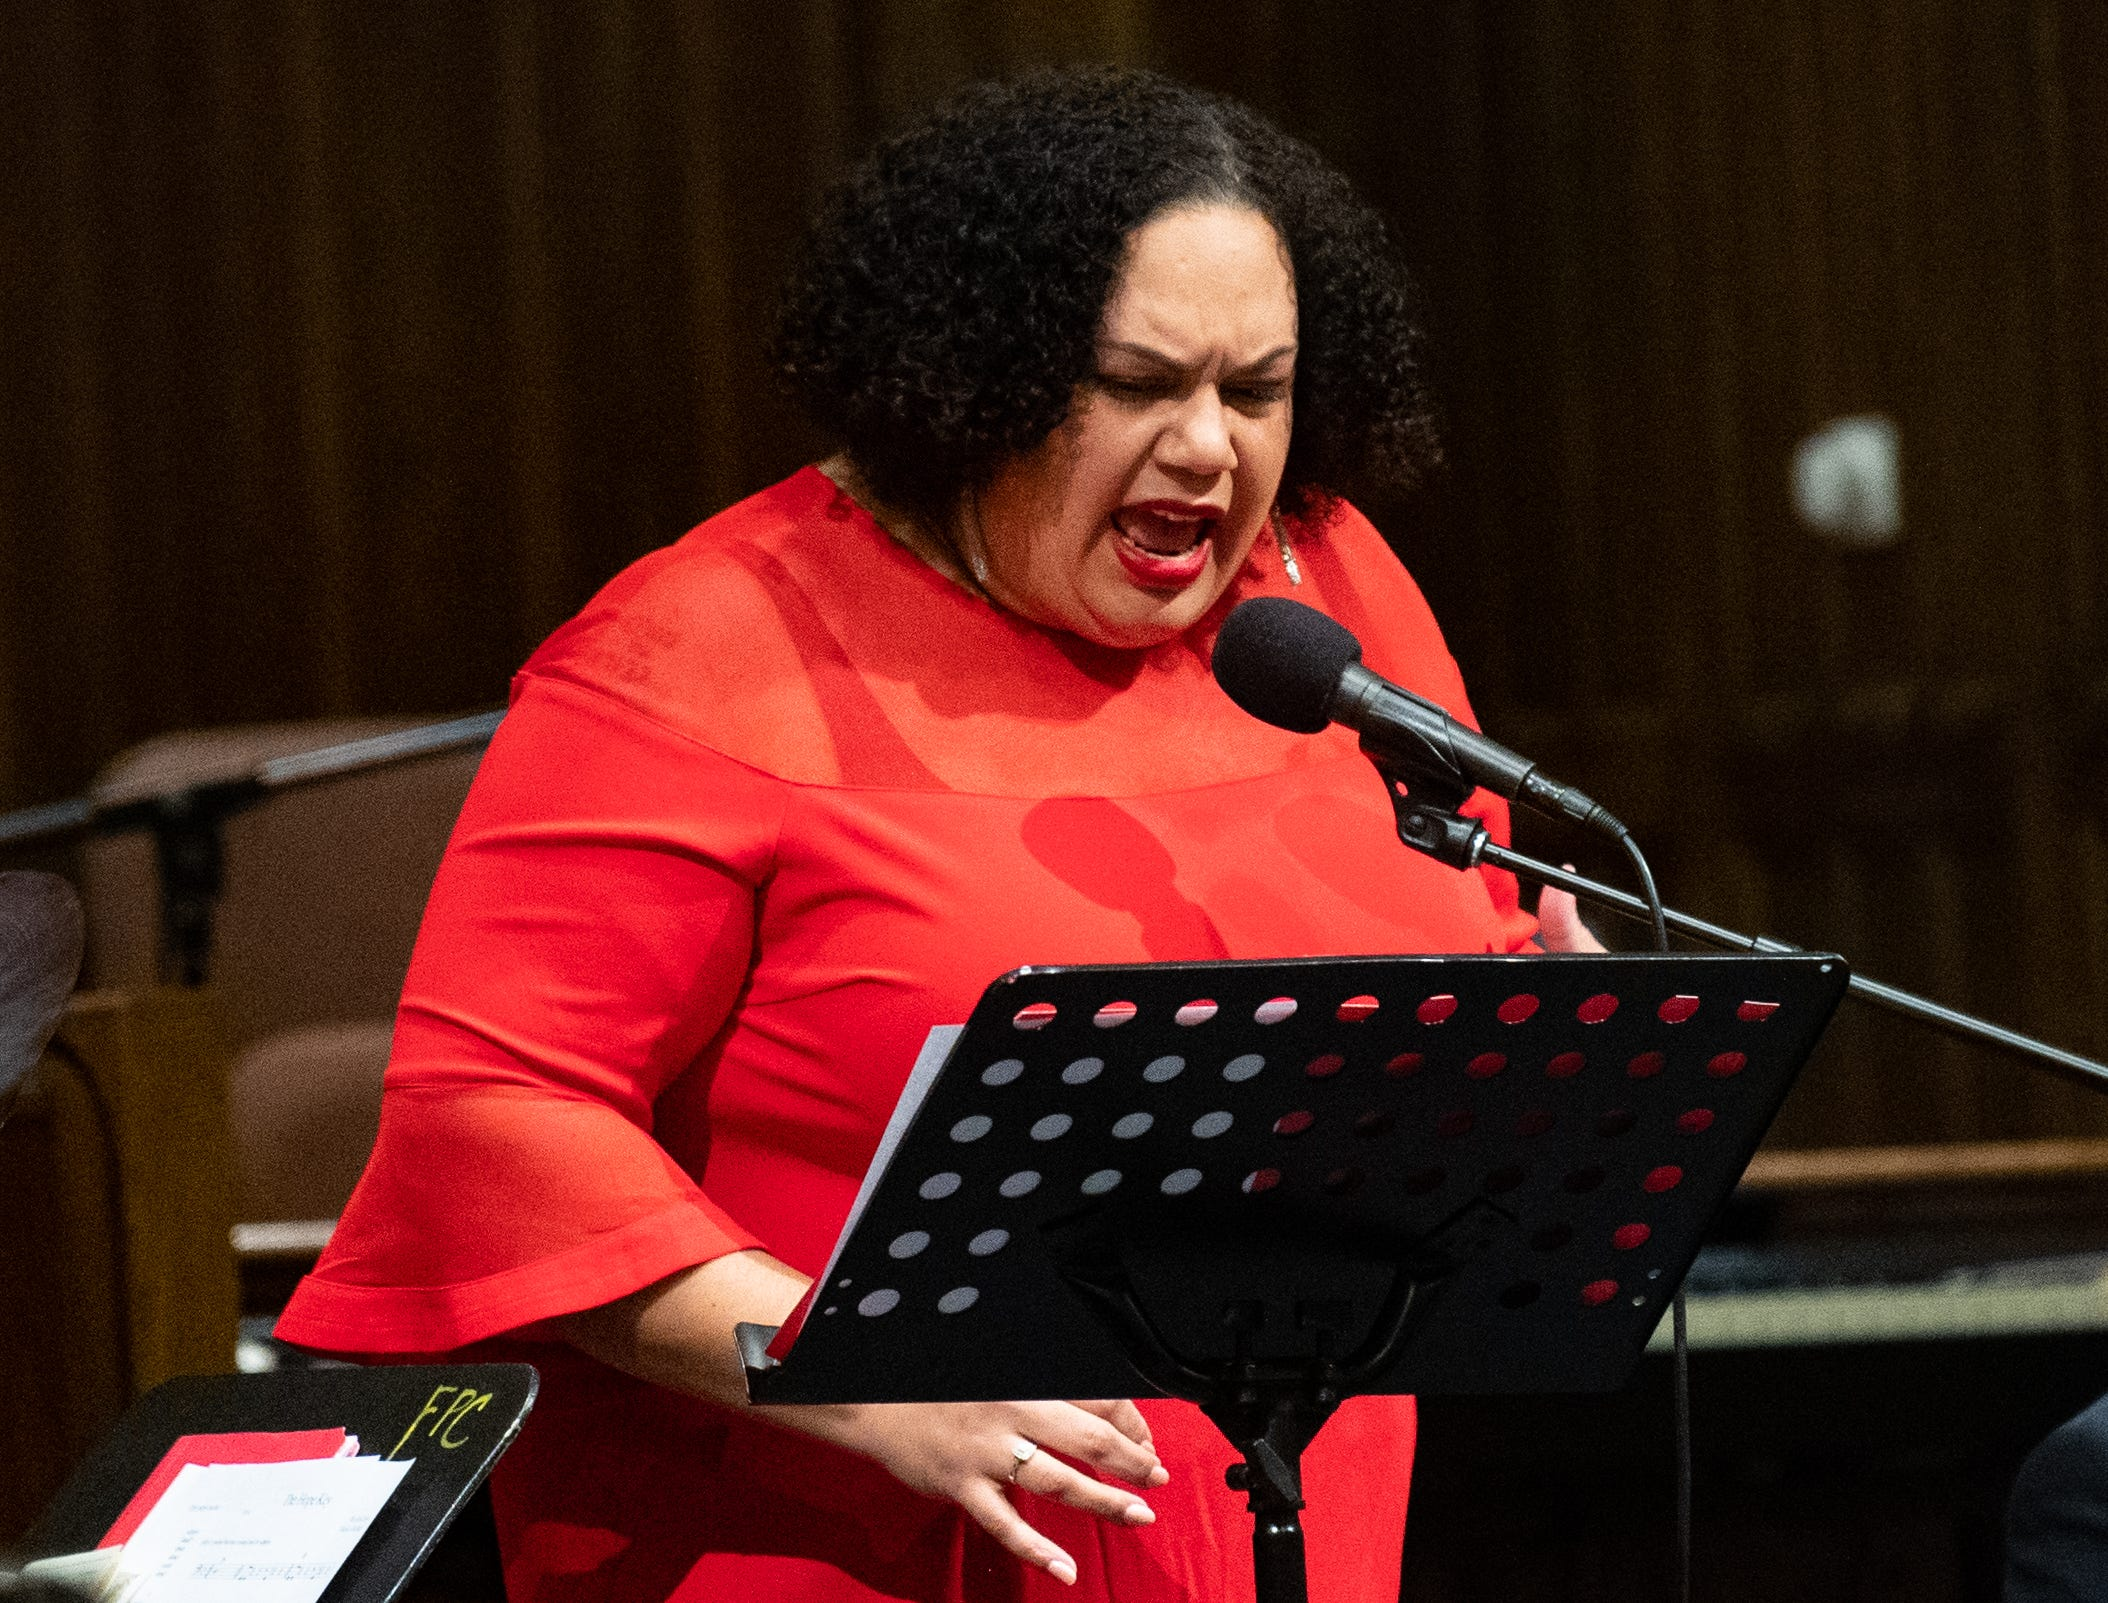 Former Poet Laureate Carla Christopher shares a powerful poem during the 21st annual Jazz Vespers concert at First Presbyterian Church in York, January 12, 2019.